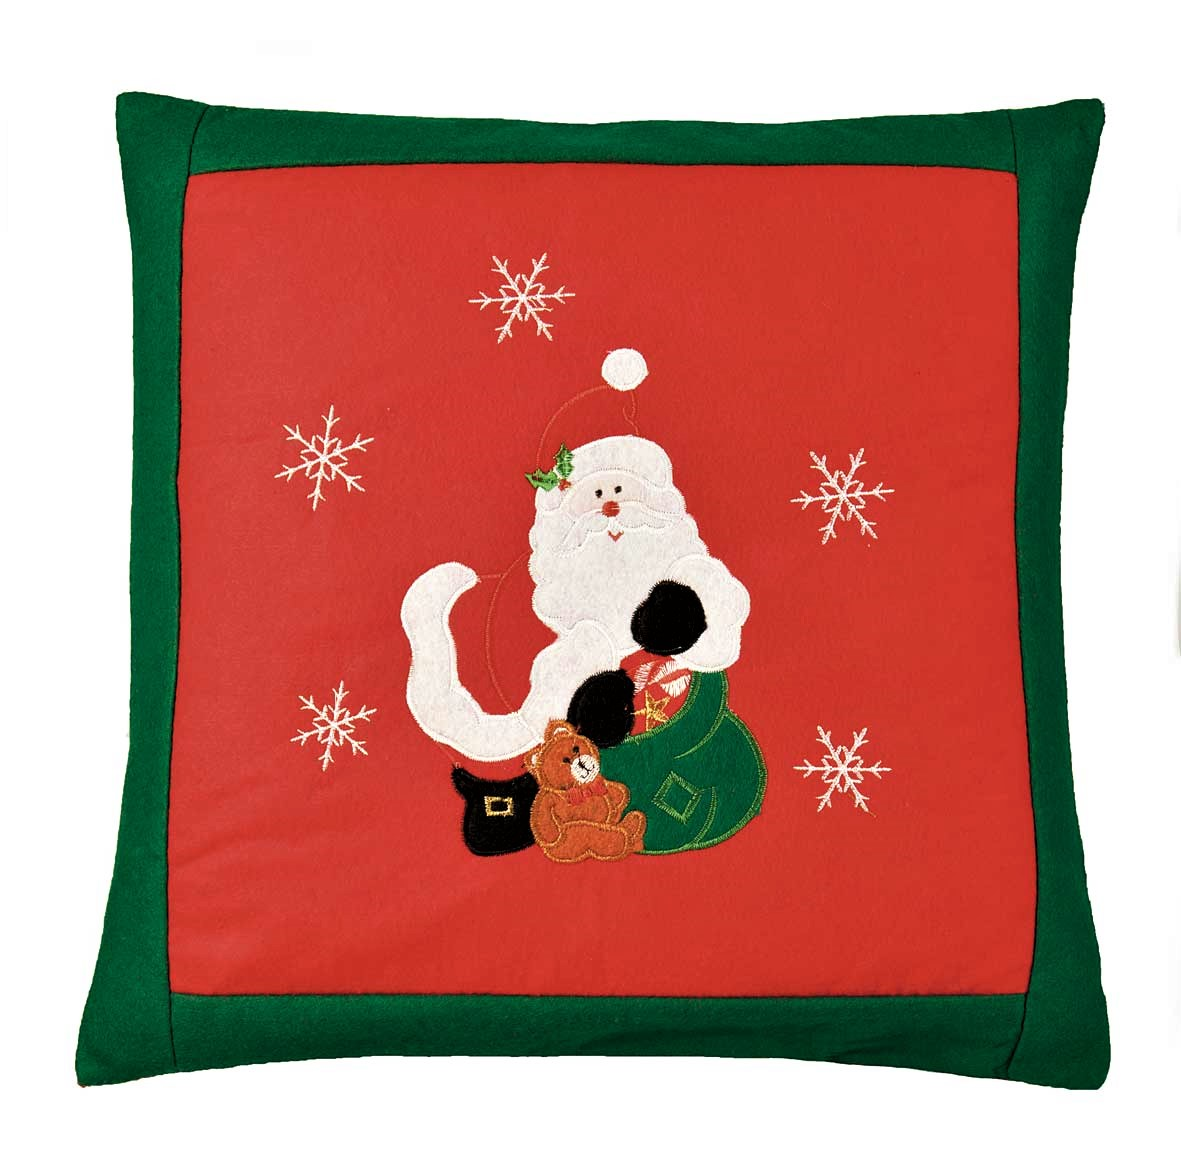 Santa Embroidered Christmas Cushion Cover Red 42x42cm